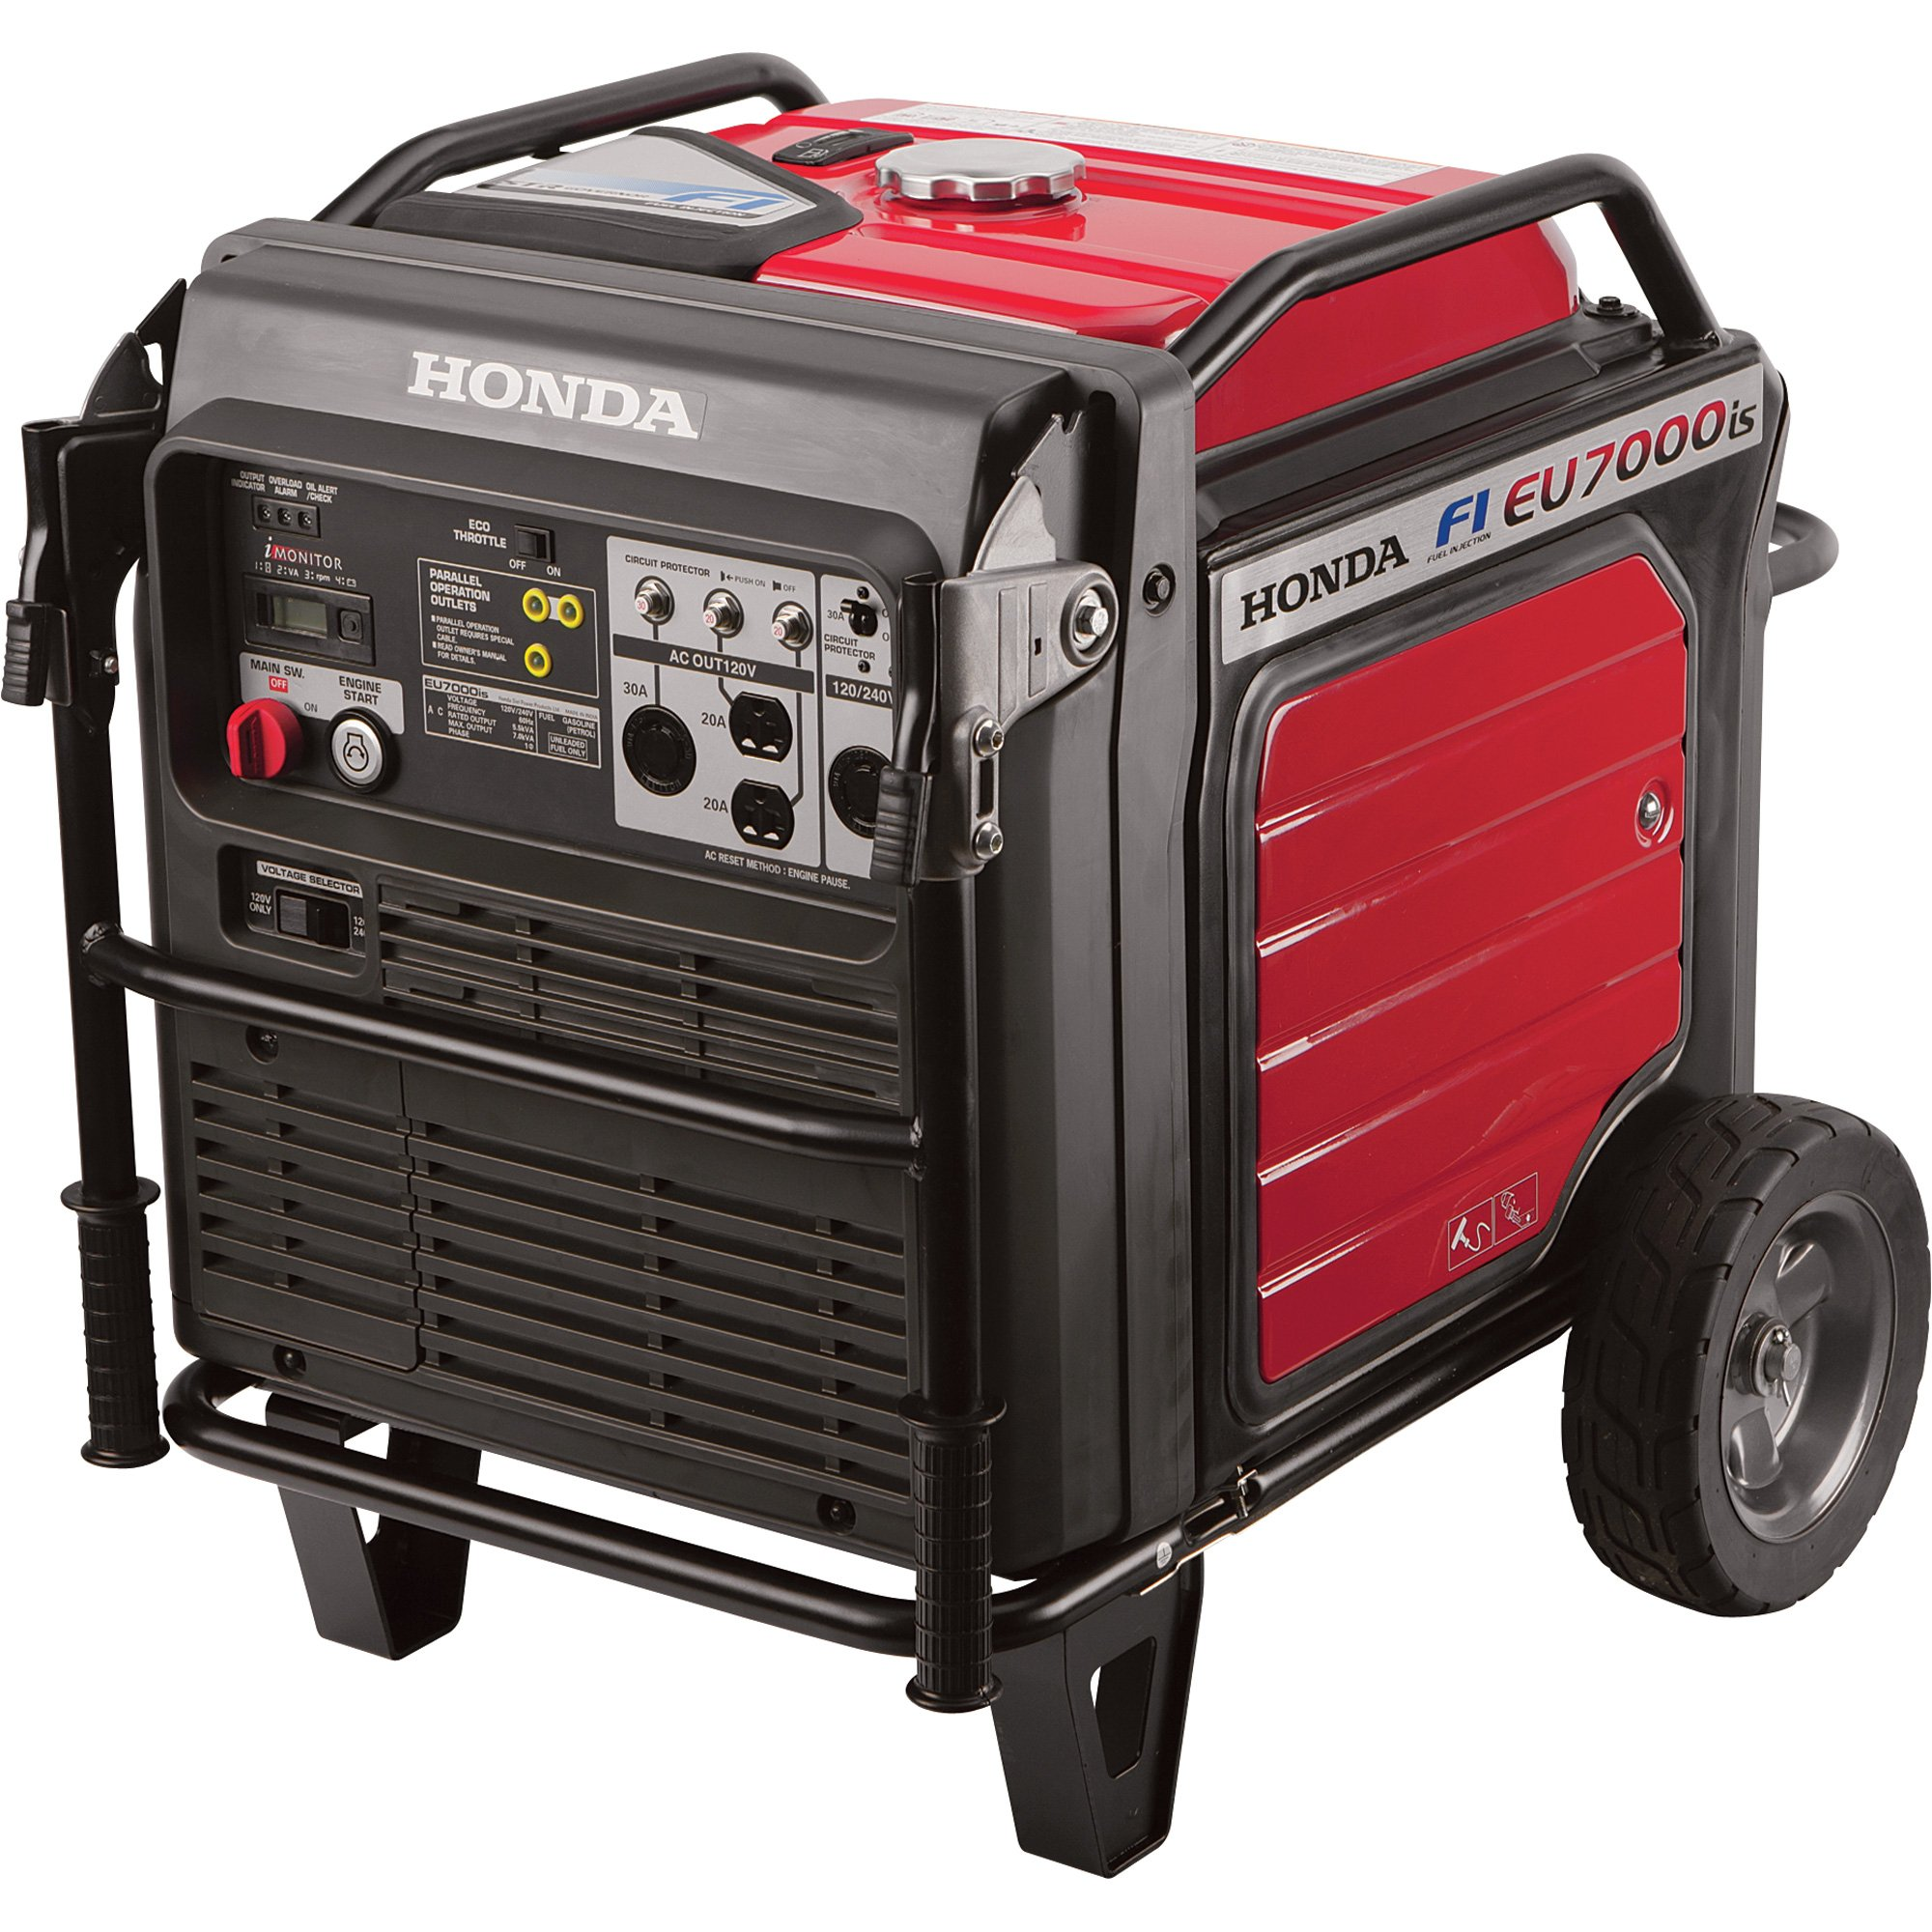 Honda EU7000iAT1 7000 Watt 120/240 Volt Super Quiet